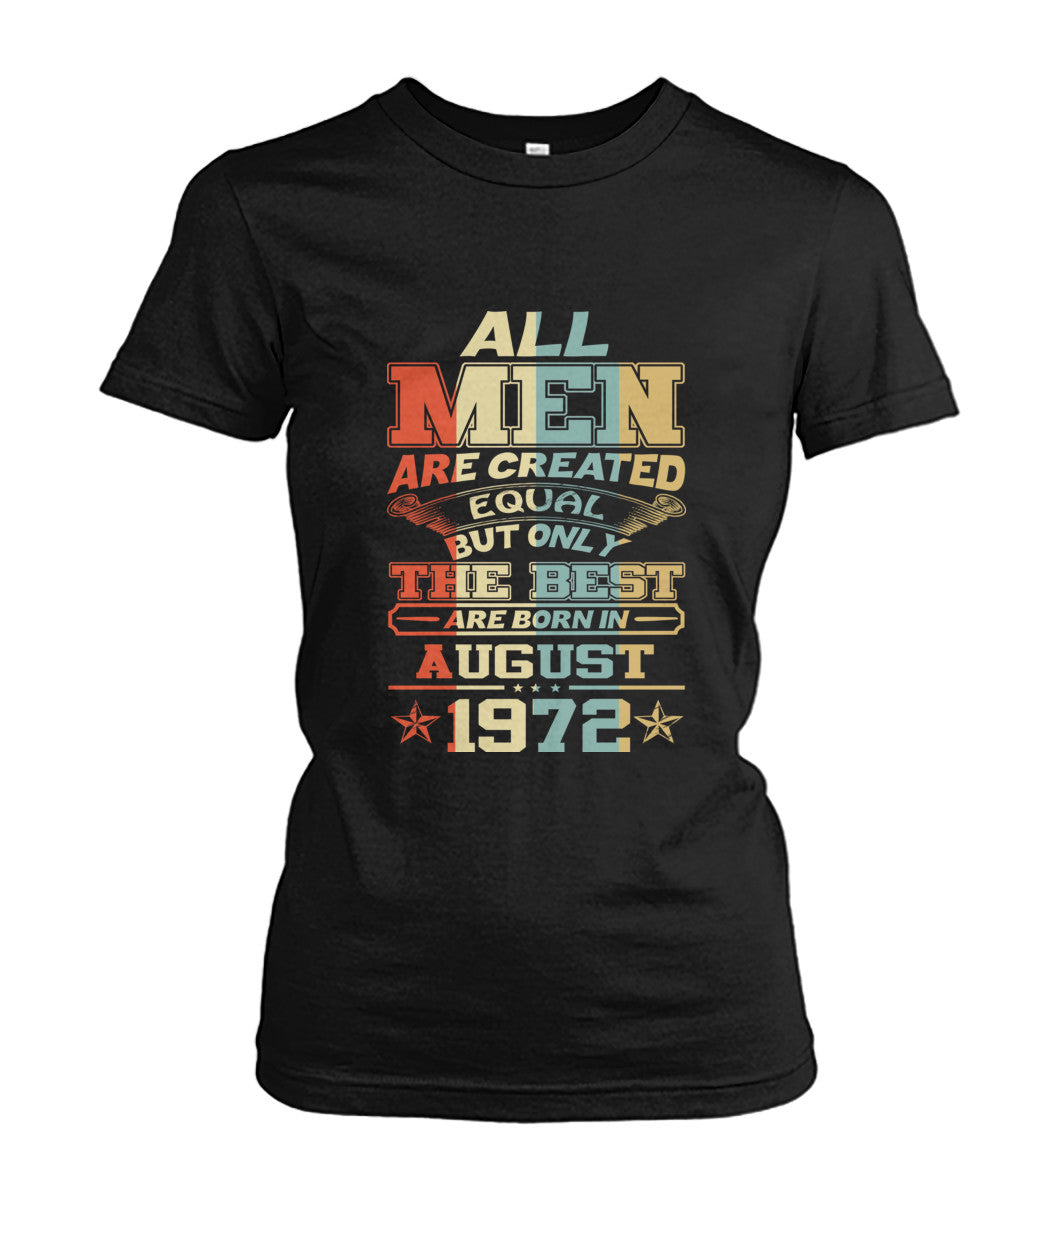 All Men Are Created Equal Only Best Are Born August 1972